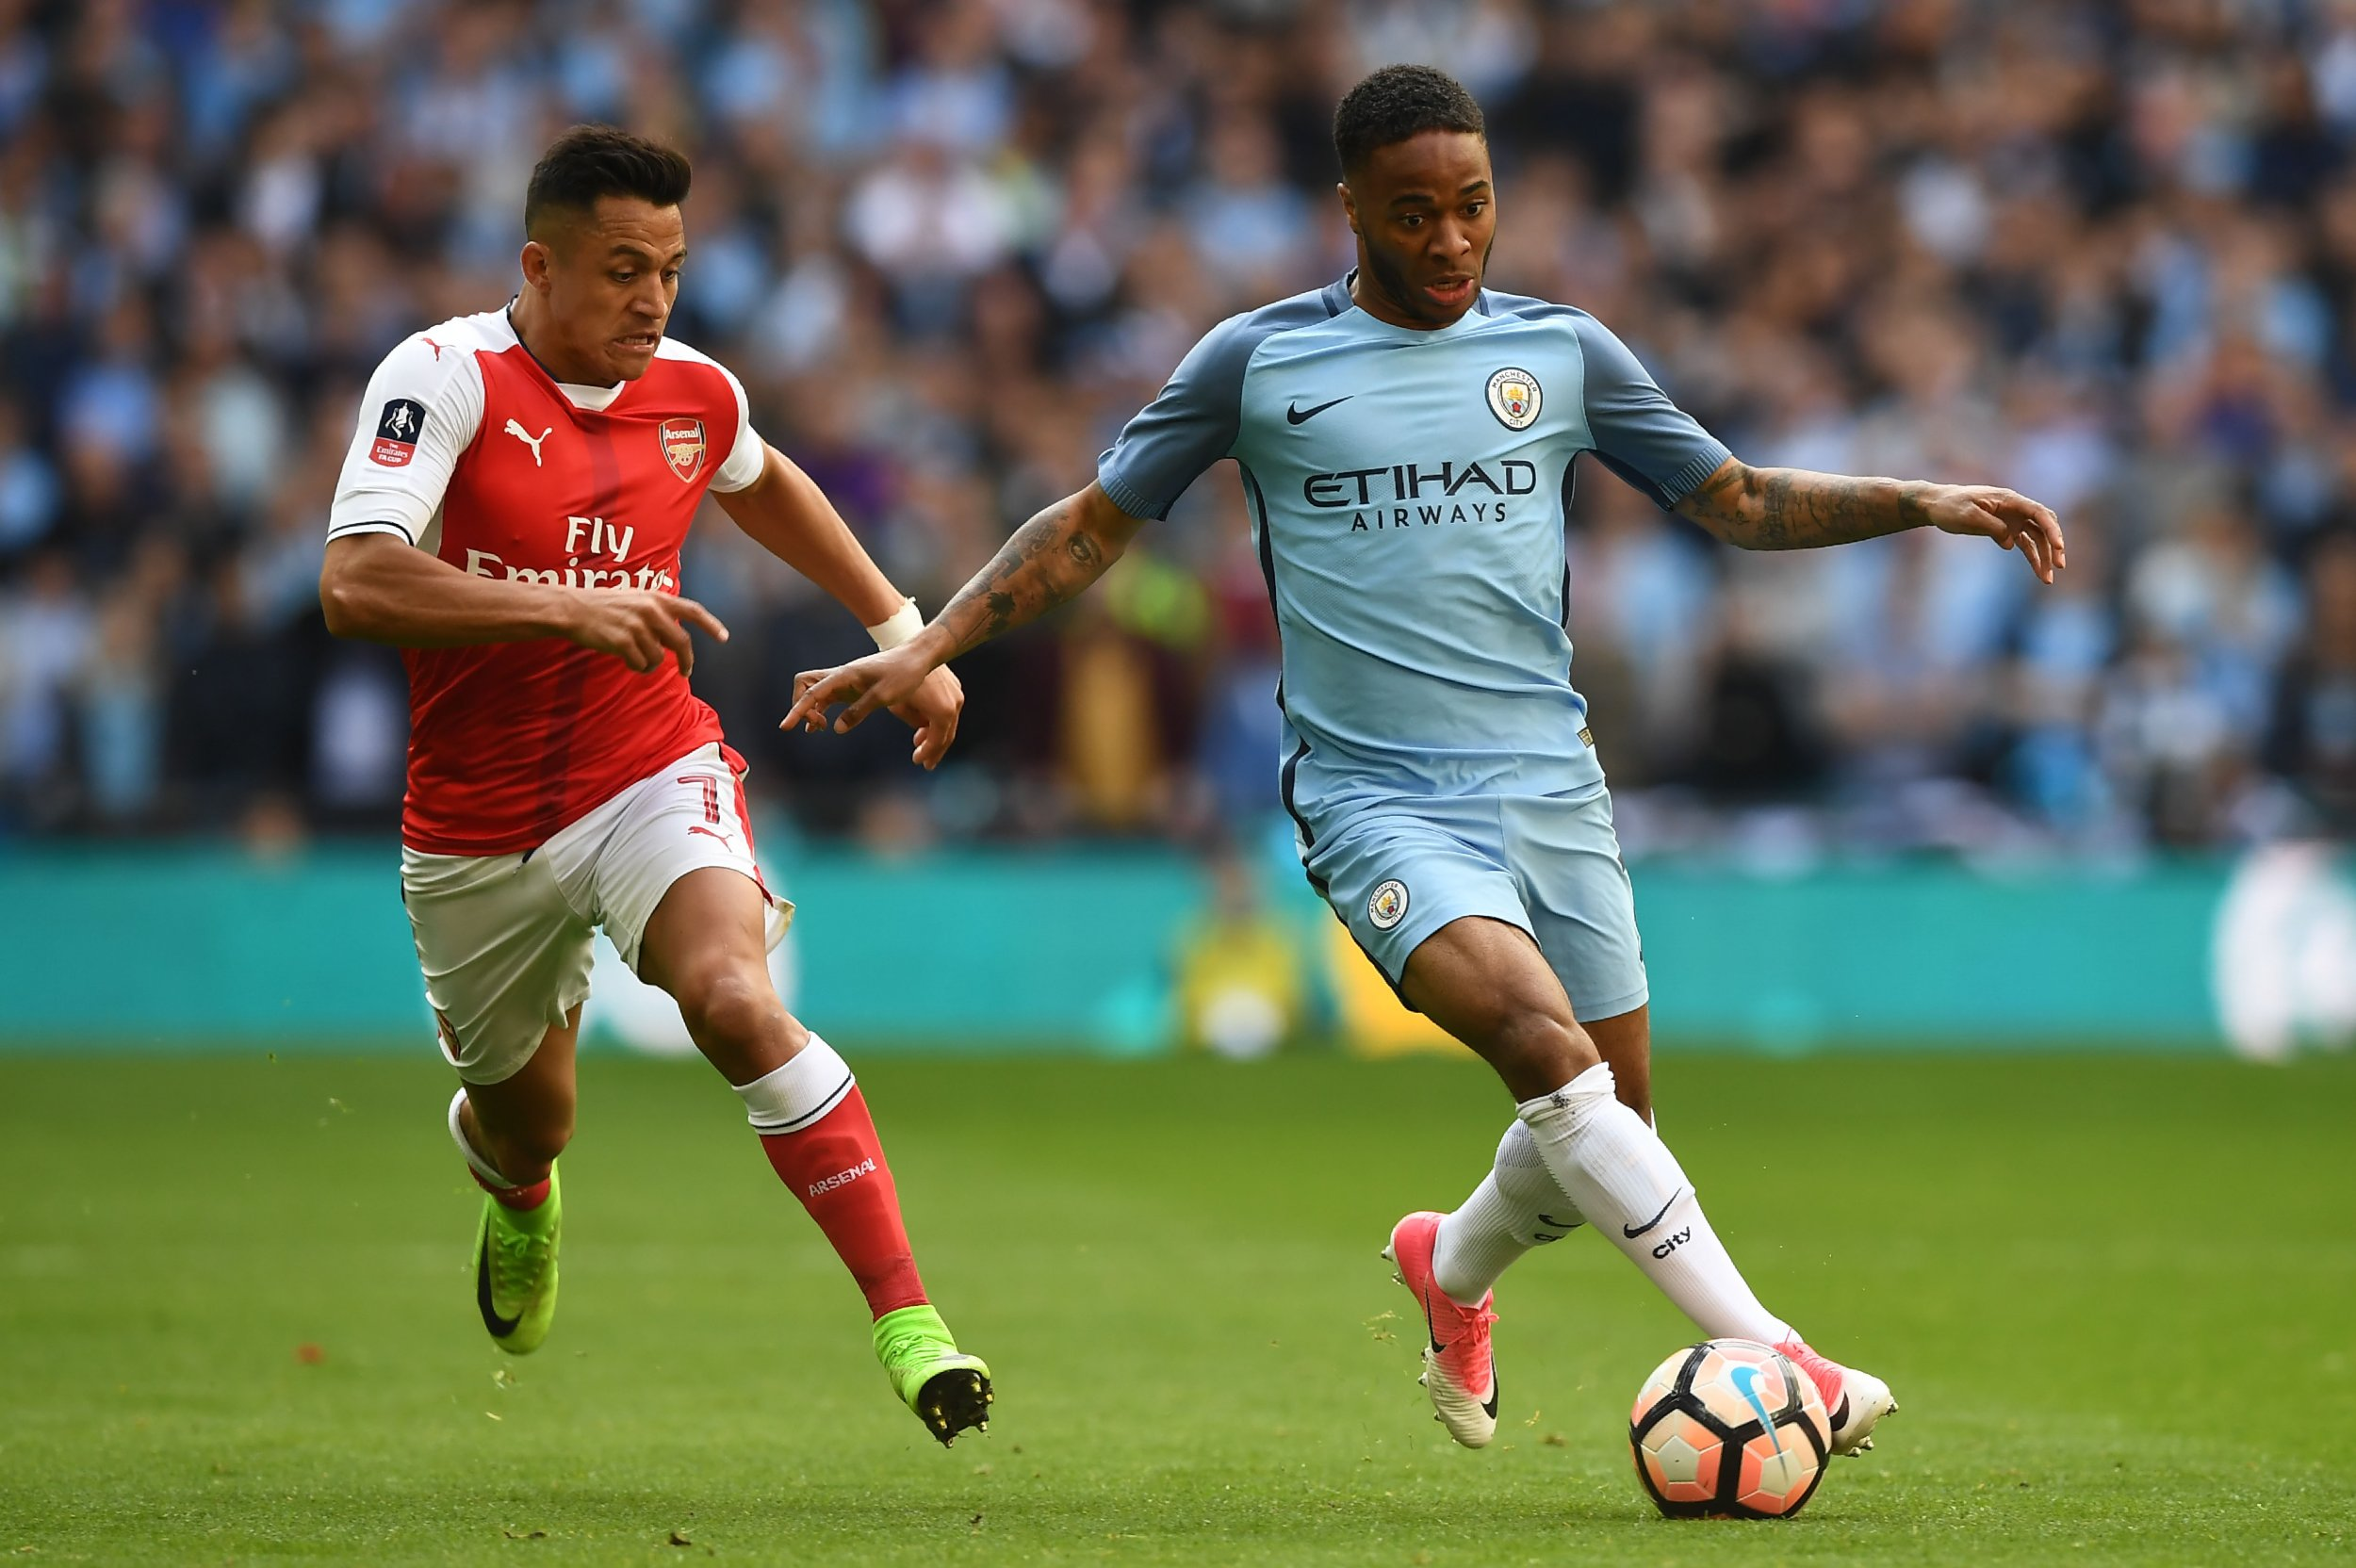 Manchester City winger Raheem Sterling, right, with Arsenal's Alexis Sanchez.